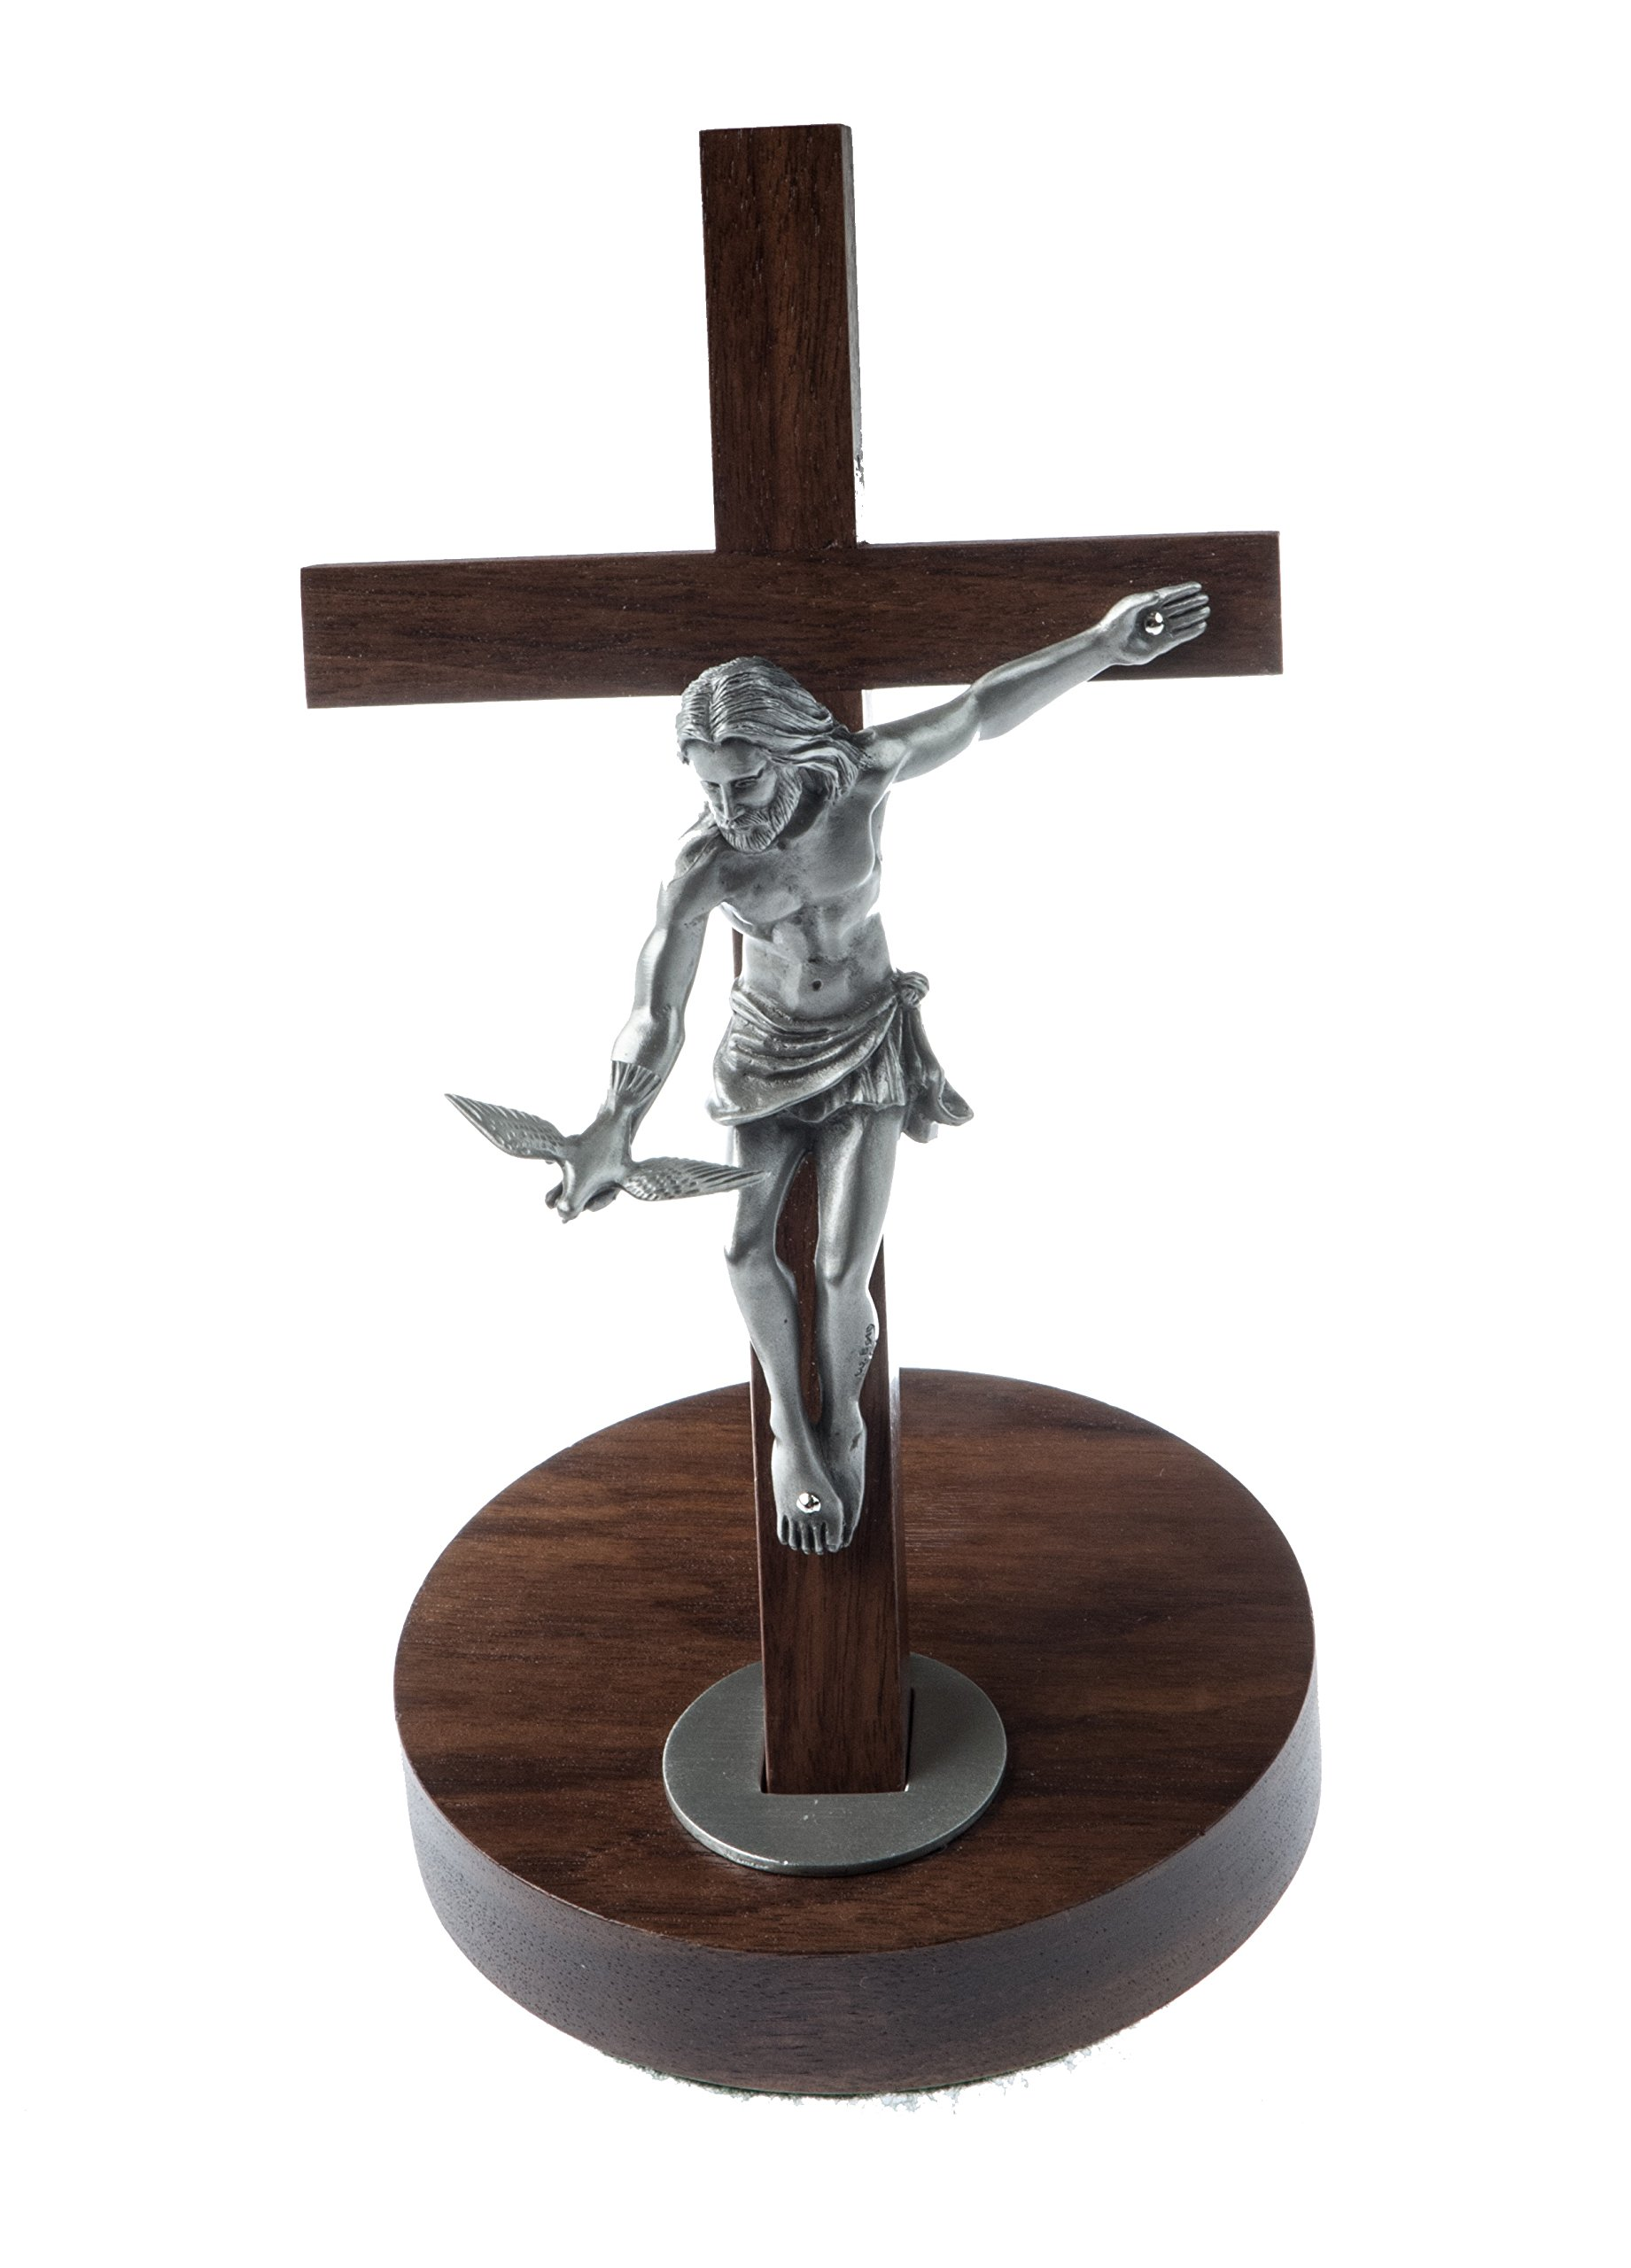 Inspire Nation Gift of the Spirit Walnut Wood Standing Wall Cross Crucifix with Removable Base for Hanging 8 inches